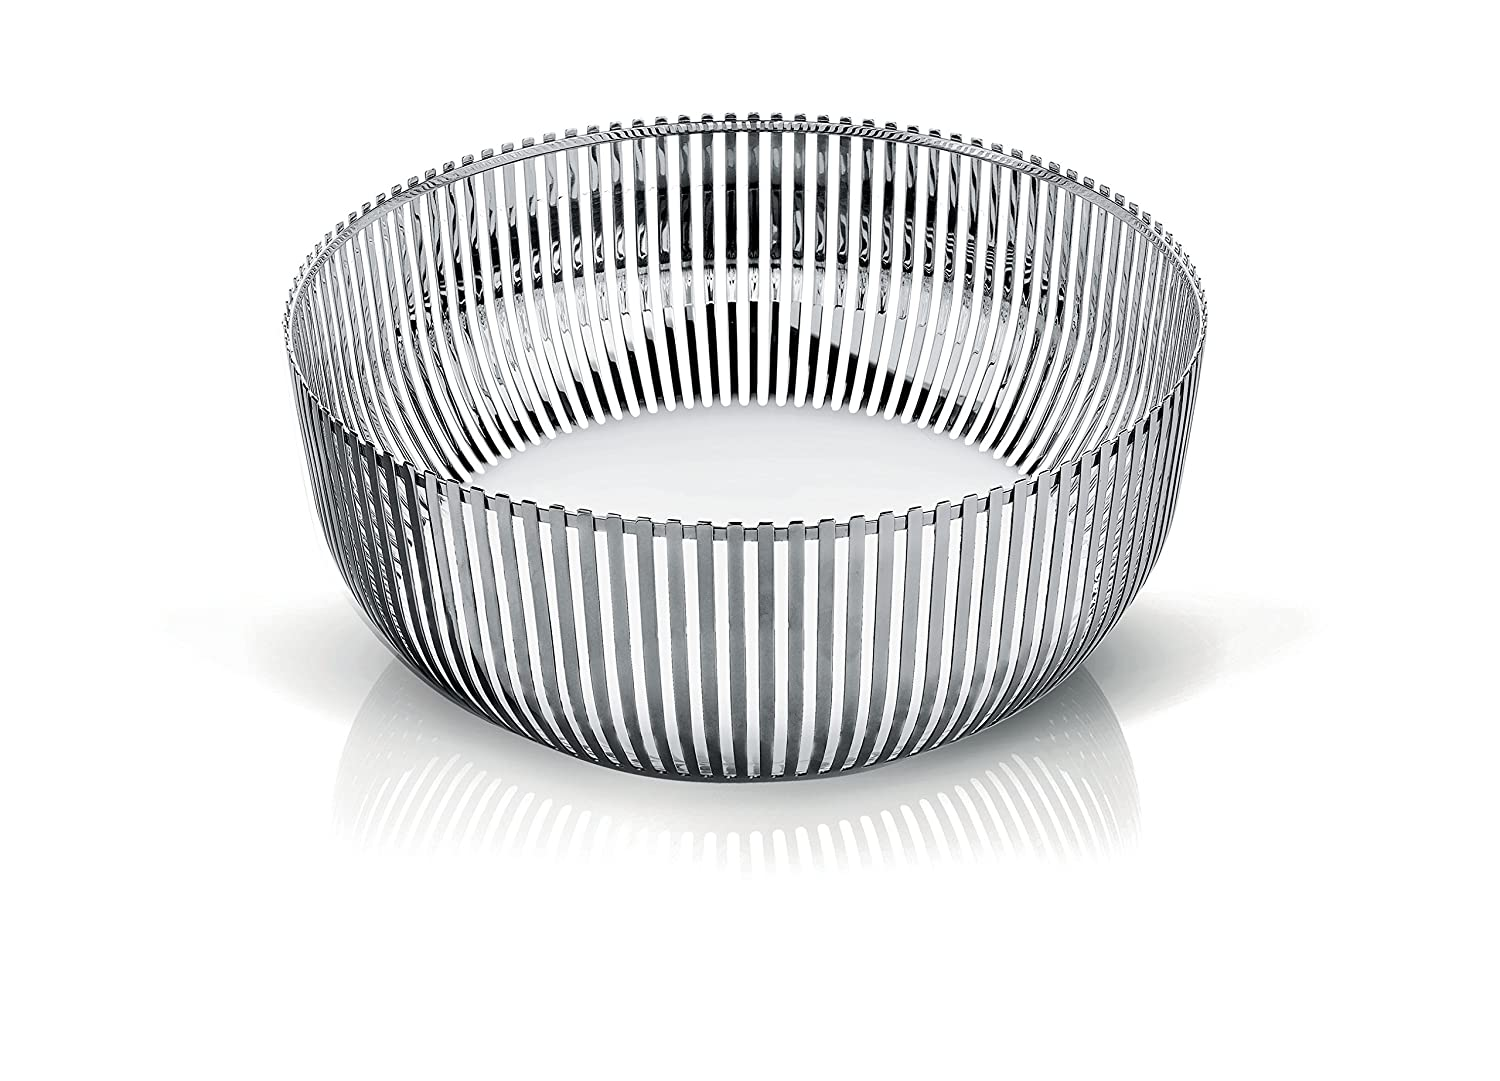 Alessi Fruit Bowl in 18/10 Stainless Steel Mirror Polished, Silver PCH05/30